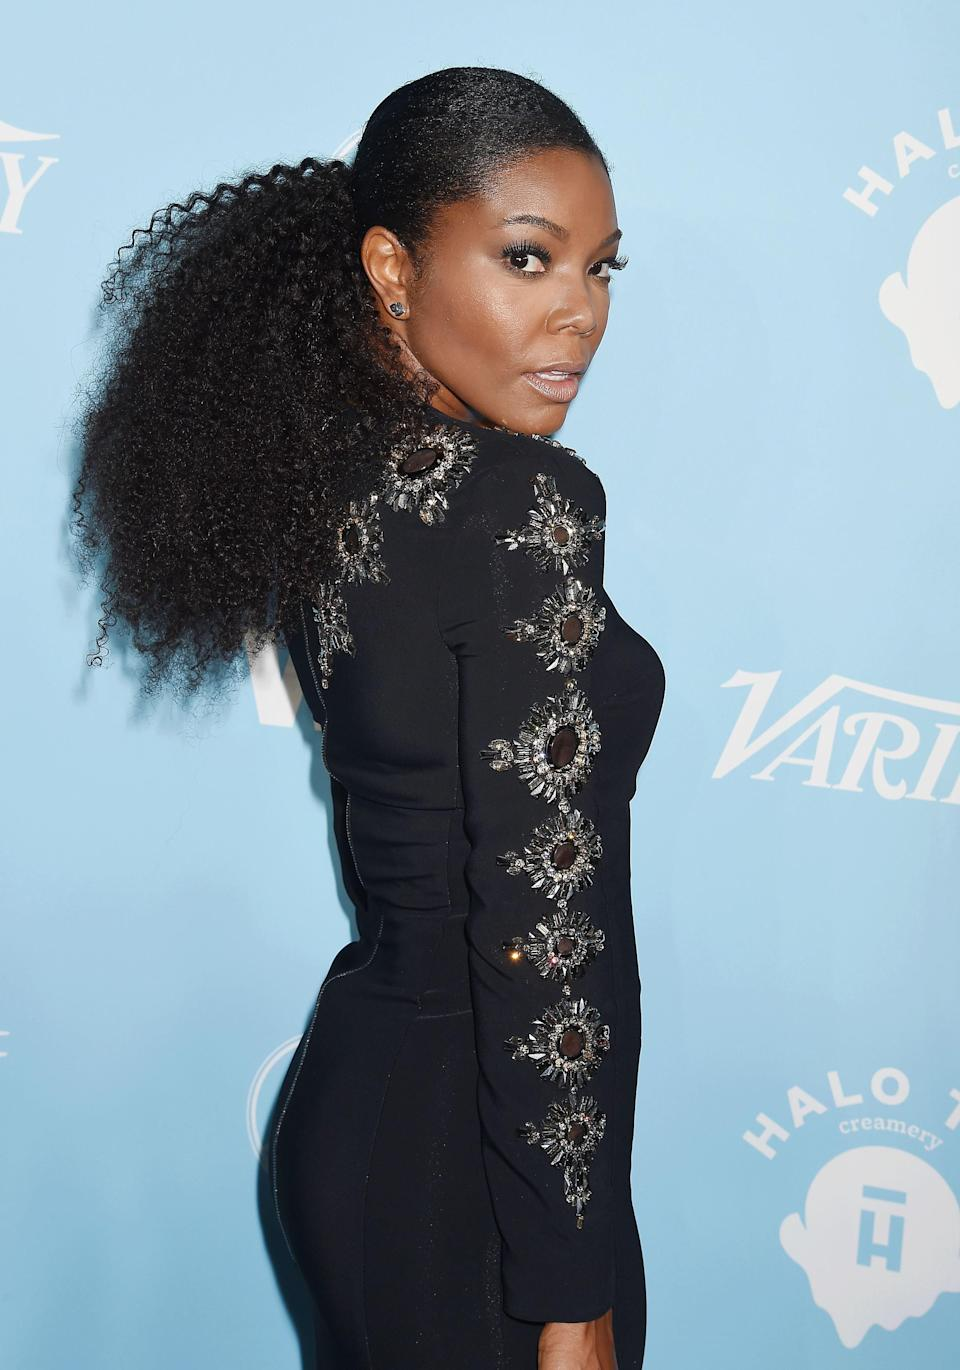 "Gabrielle Union has never made a hair misstep in her life, and this kinky pony is no exception. Run a <a href=""https://www.glamour.com/story/best-hair-gel-for-curls?mbid=synd_yahoo_rss"" rel=""nofollow noopener"" target=""_blank"" data-ylk=""slk:strong-hold gel"" class=""link rapid-noclick-resp"">strong-hold gel</a> through your crown for that smooth, shiny finish, and let your kinks balloon to their fullest."